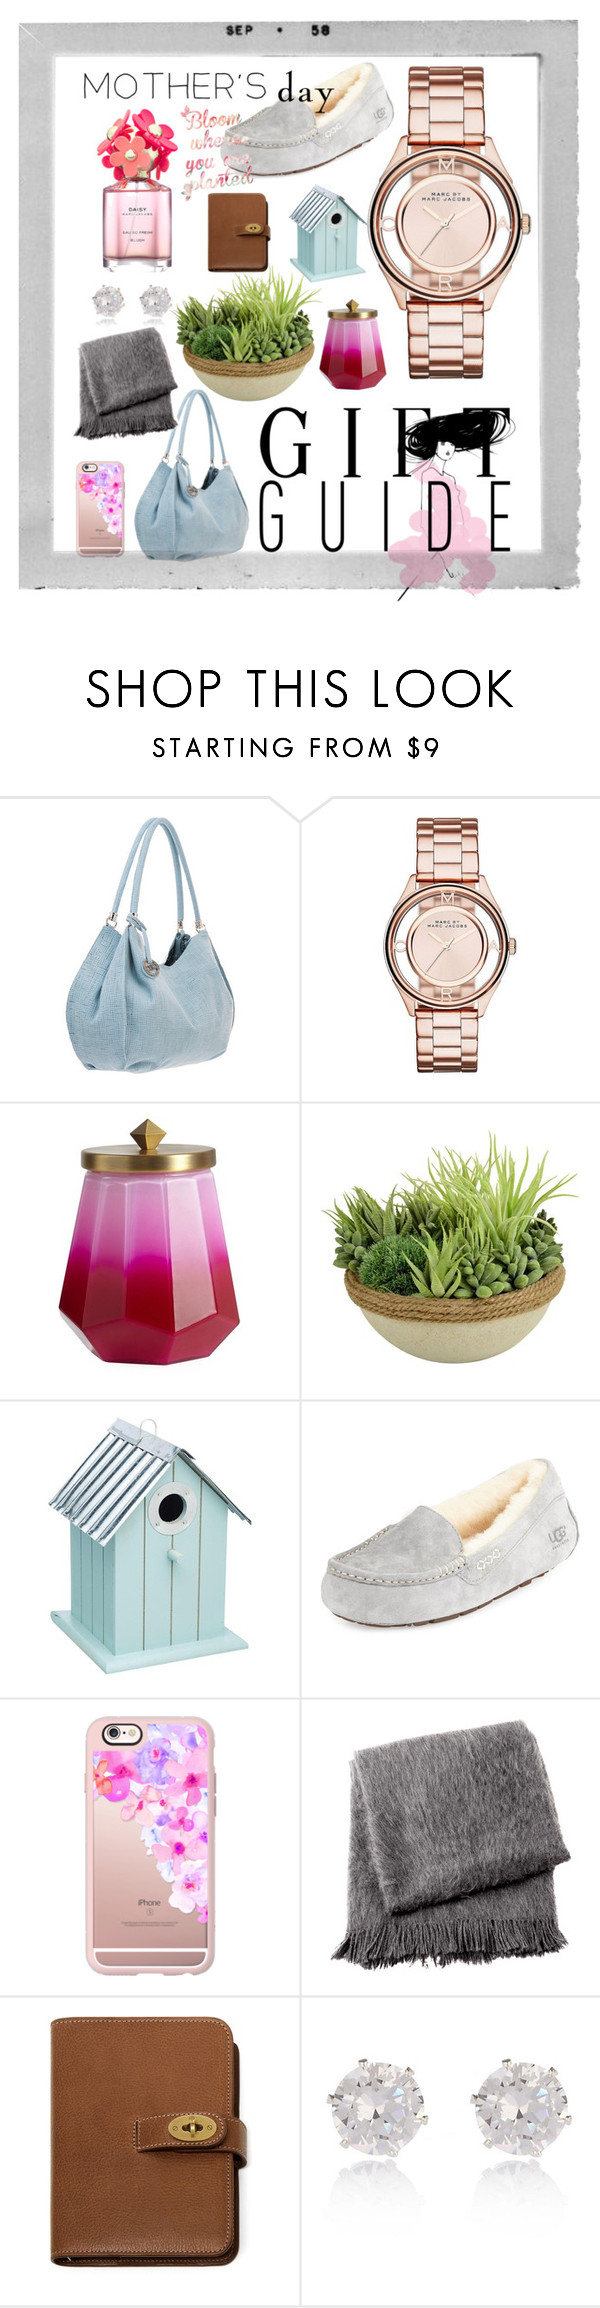 """""""for mom"""" by jennifer-r-heuertz ❤ liked on Polyvore featuring Marc by Marc Jacobs, Illume, Picnic at Ascot, UGG Australia, Casetify, From the Road, Mulberry, River Island, Marc Jacobs and Polaroid"""